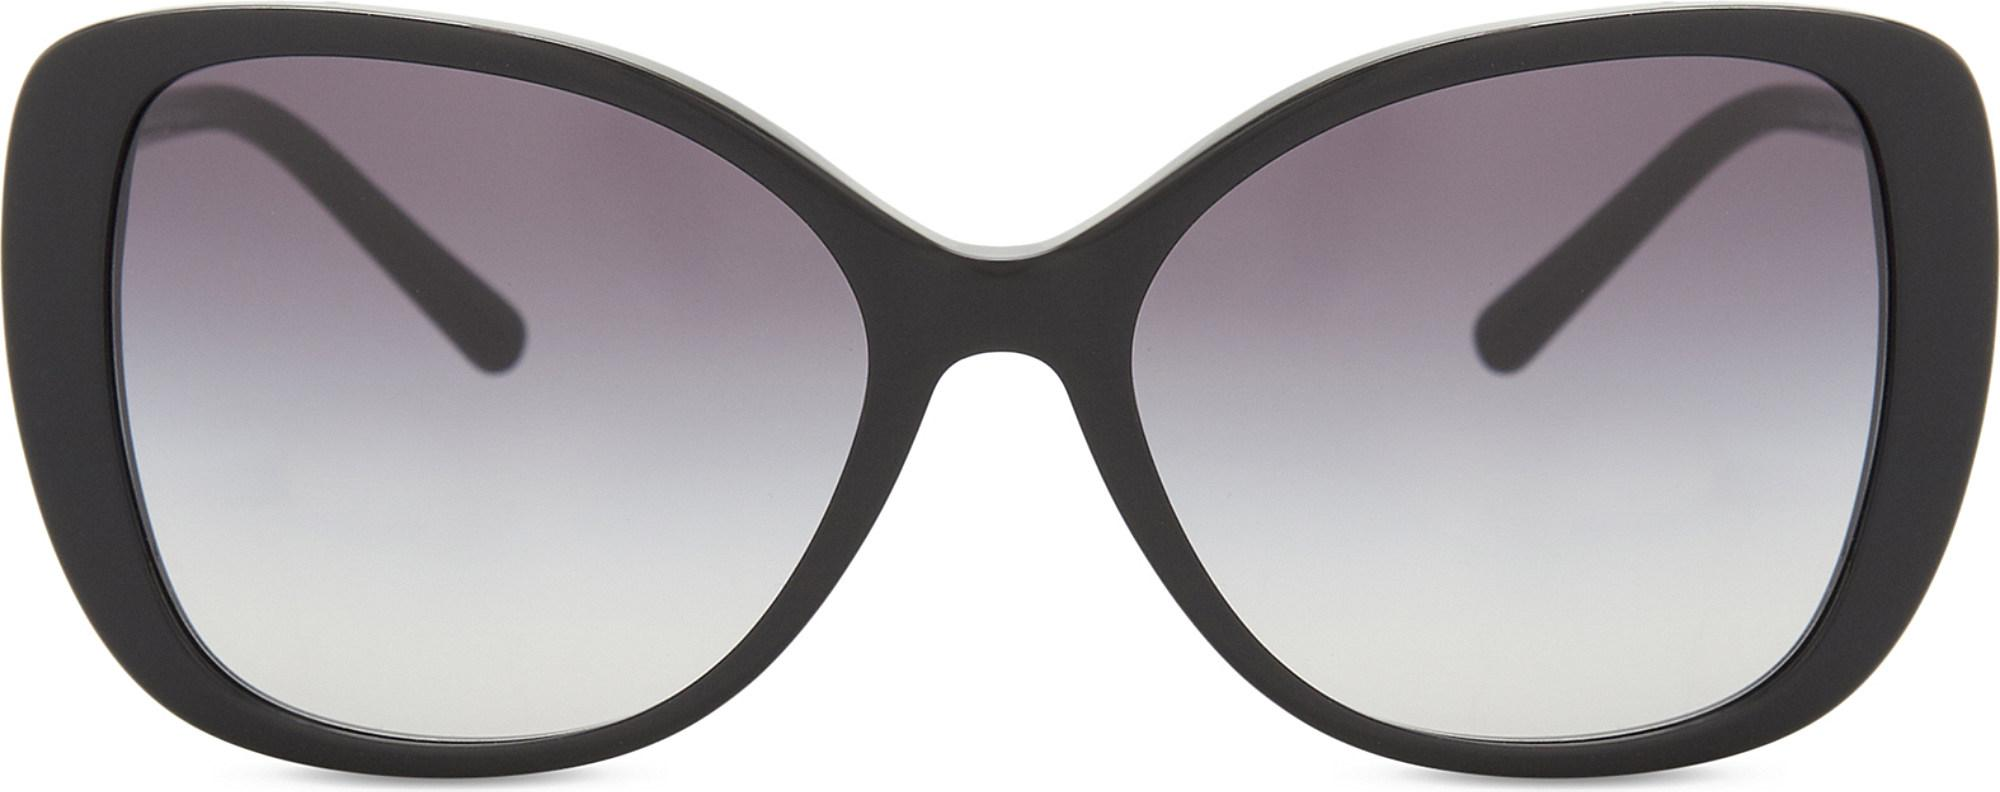 894bb9dd972c Lyst - Burberry Be4238 Butterfly-frame Sunglasses in Black